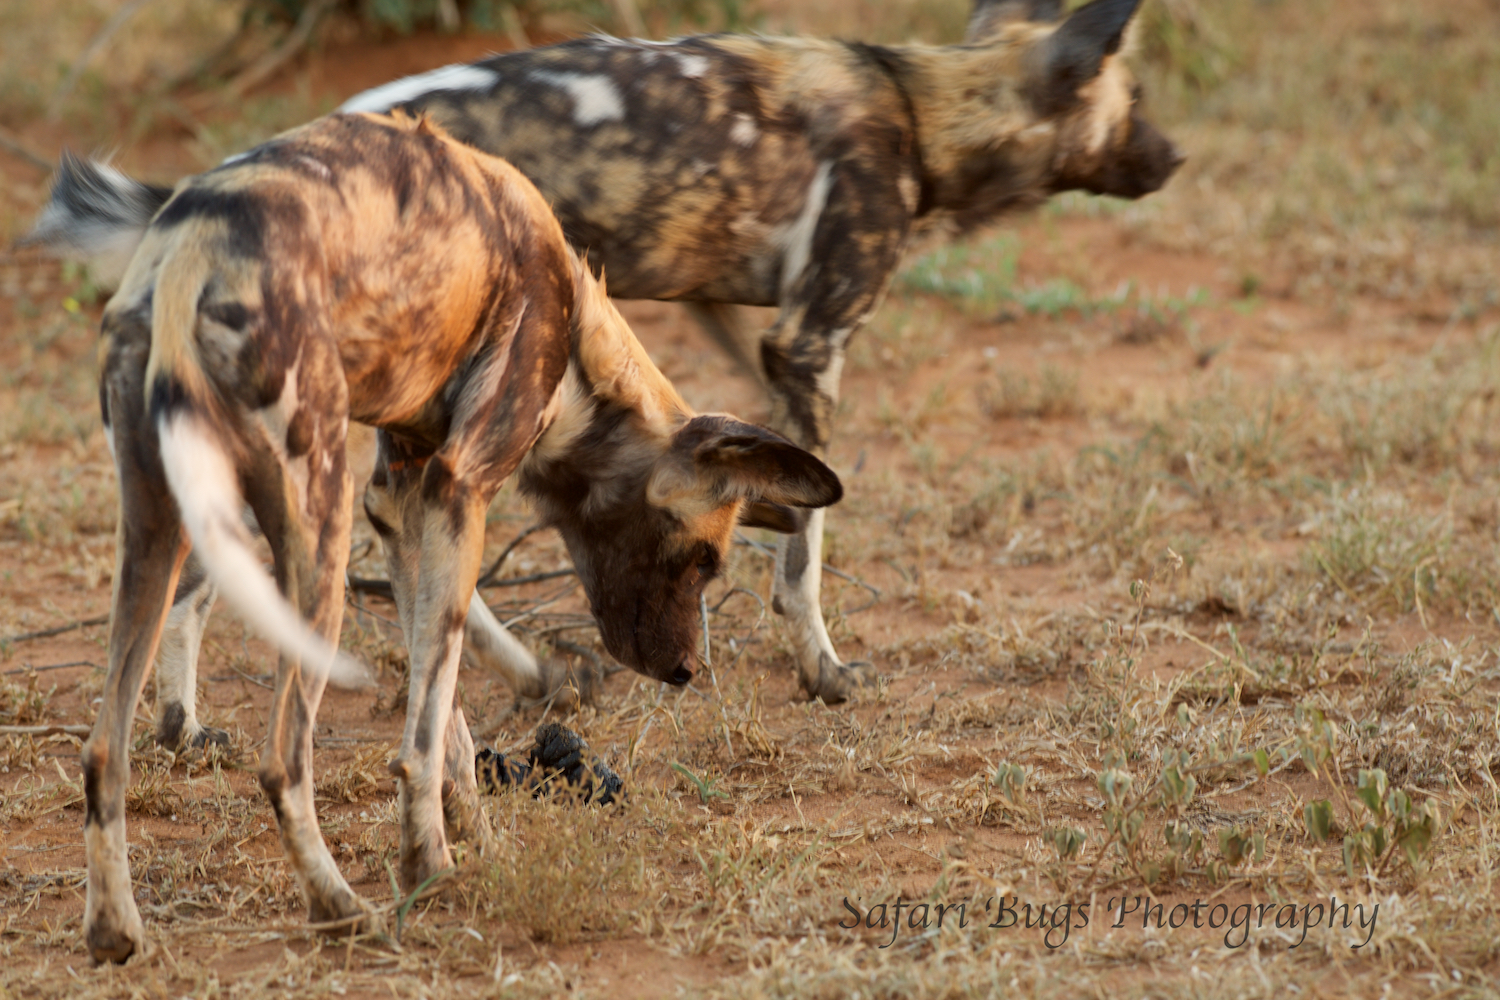 Sometimes a story takes days to emerge.  You need to go back to the same animal time and time again.  This time it was the wild dogs.  And, the hard work paid off as they decided to hunt.  Here they are smelling the ground looking for a scent.